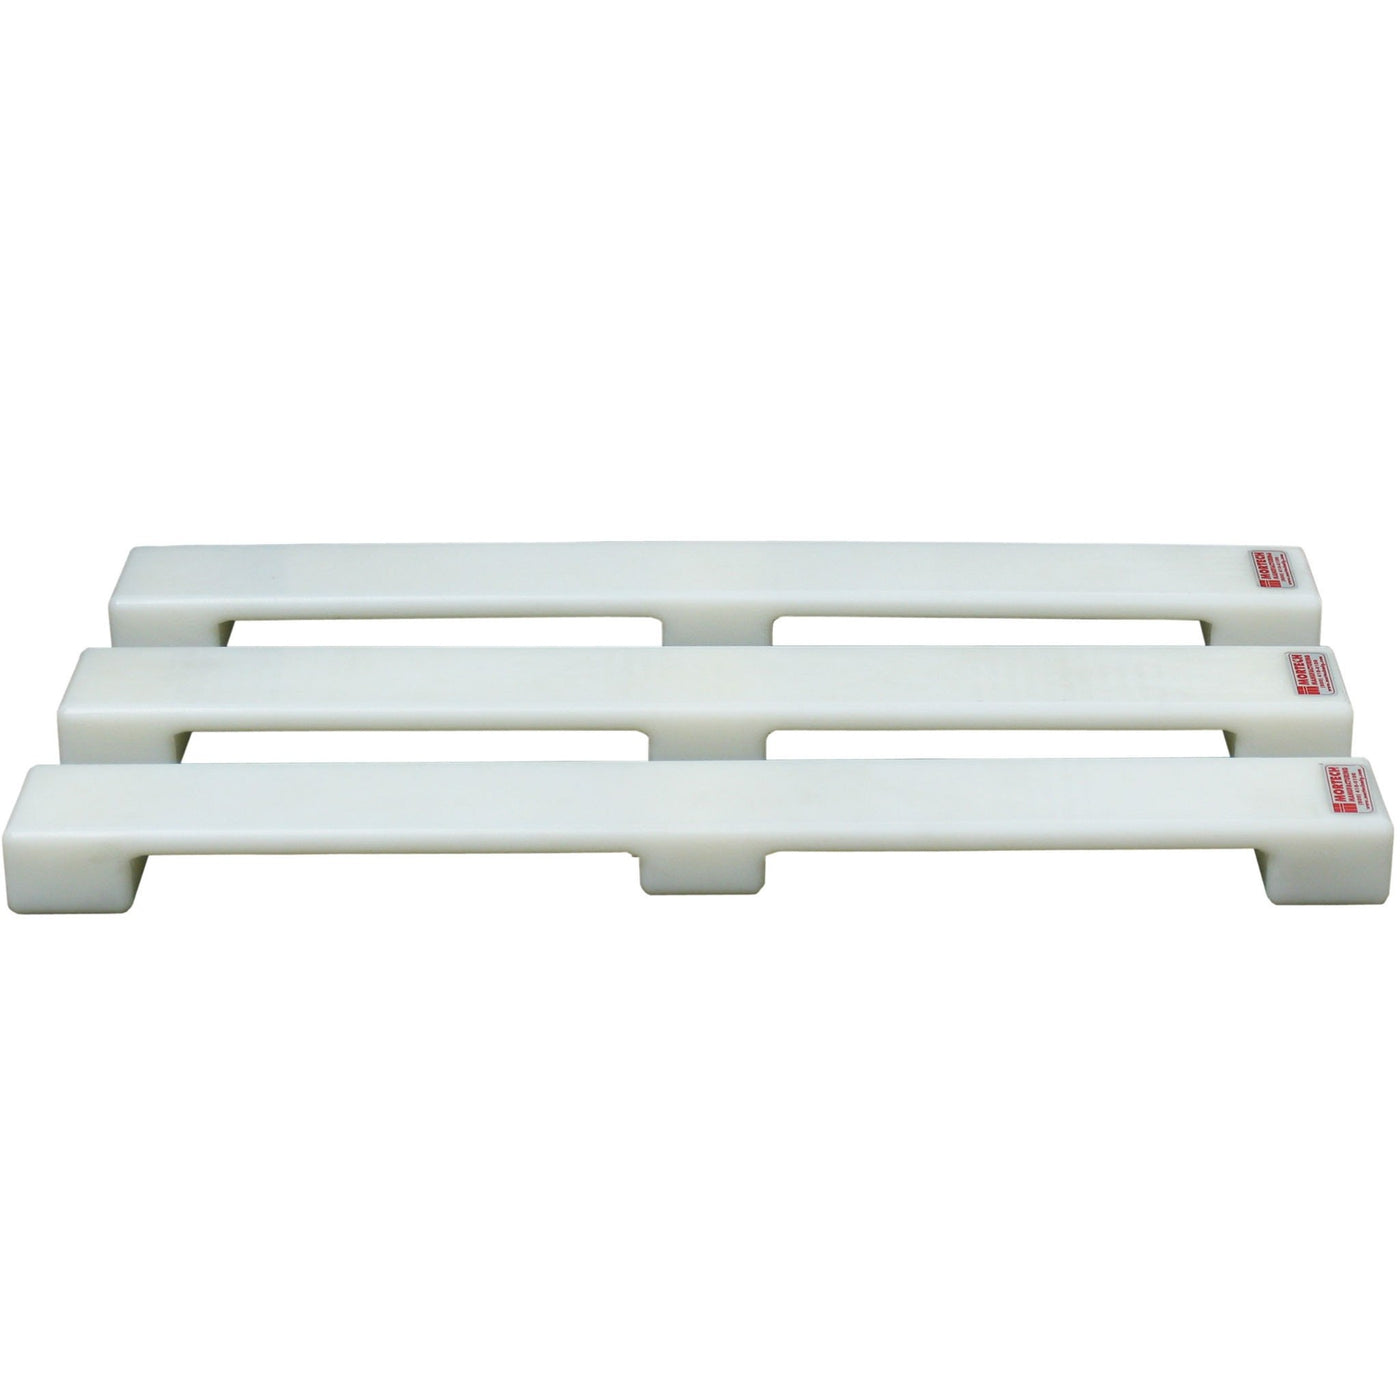 Raised Body Boards-Laboratory Accessory-Mortech Manufacturing Company Inc. Quality Stainless Steel Autopsy, Morgue, Funeral Home, Necropsy, Veterinary / Anatomy, Dissection Equipment and Accessories